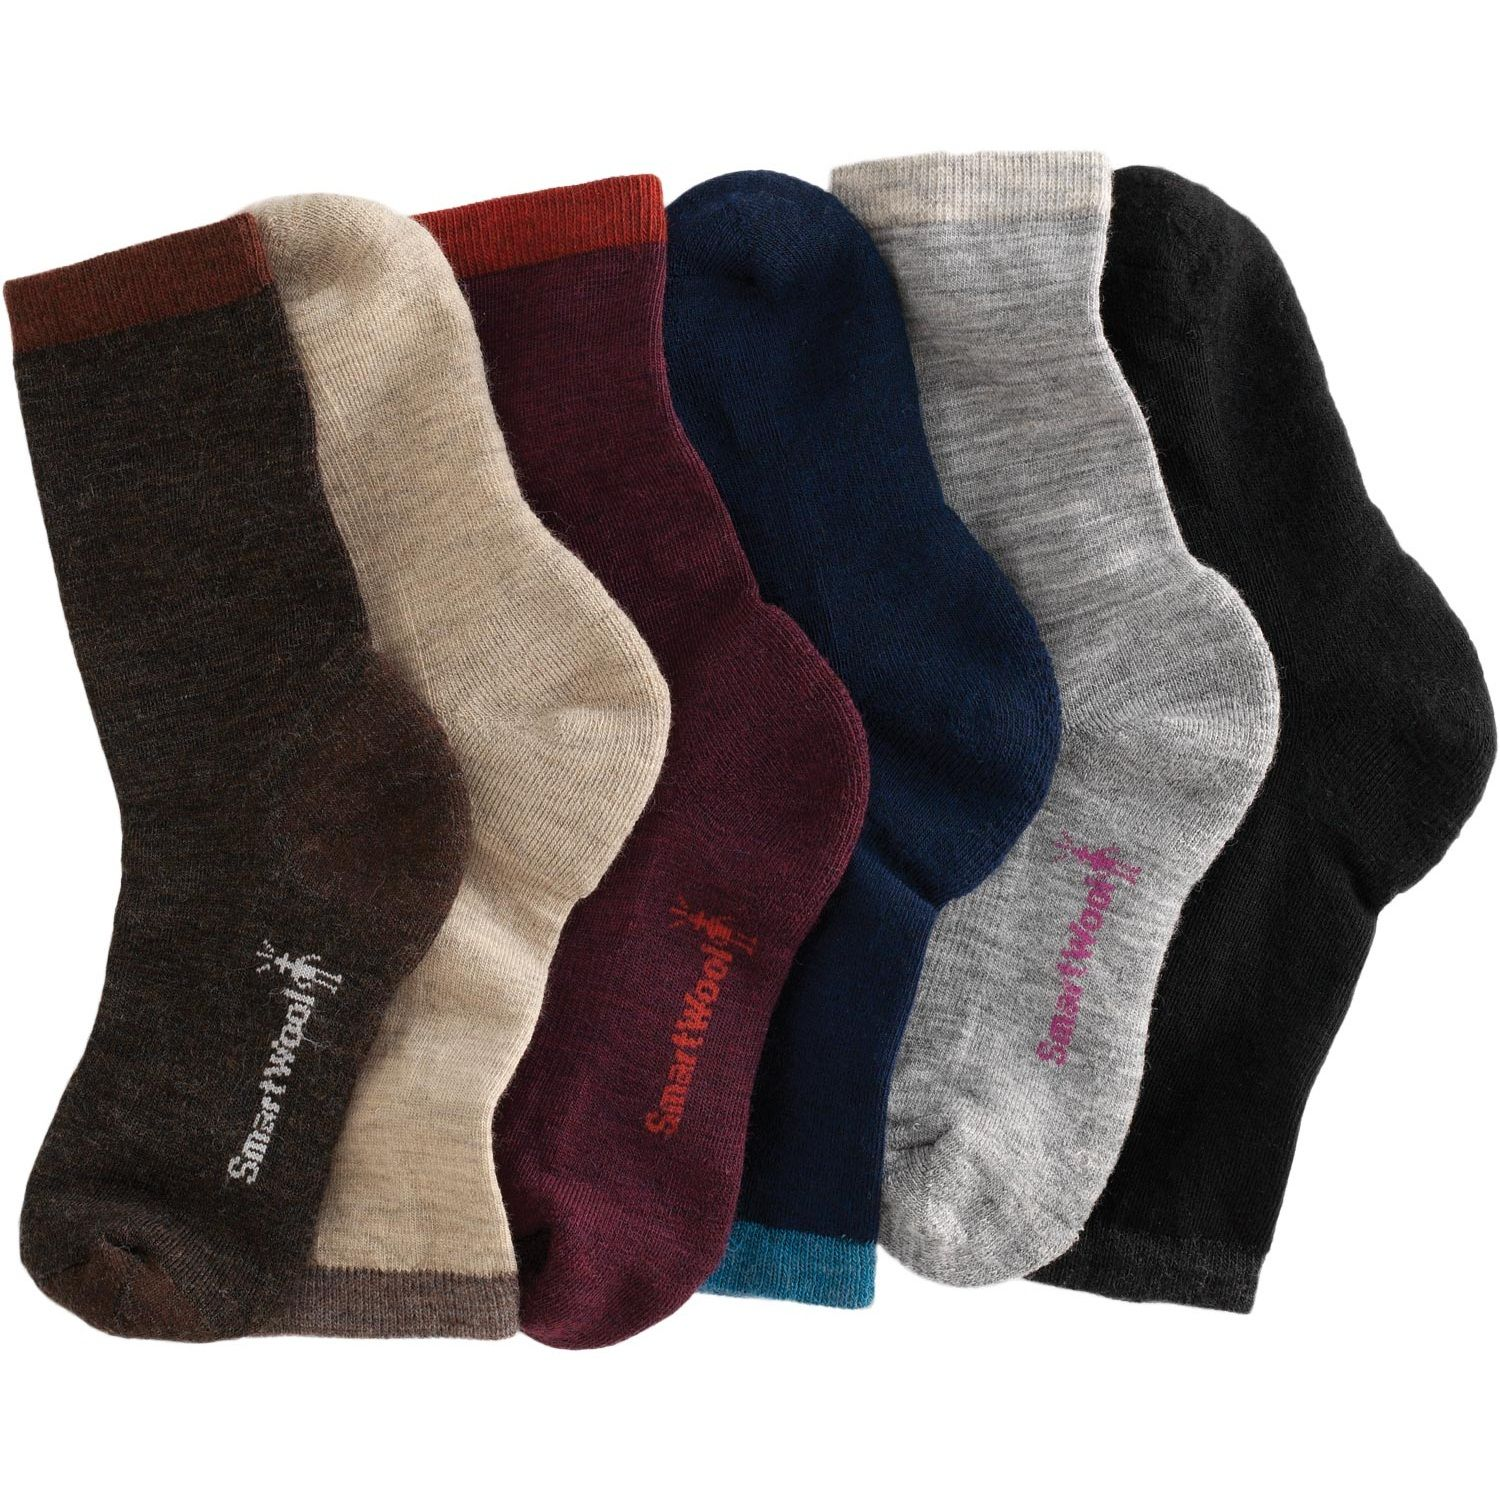 Ditch the Itch! Women's Smartwool® Socks are soft on ... - Ditch The Itch! Women's Smartwool® Socks Are Soft On Skin